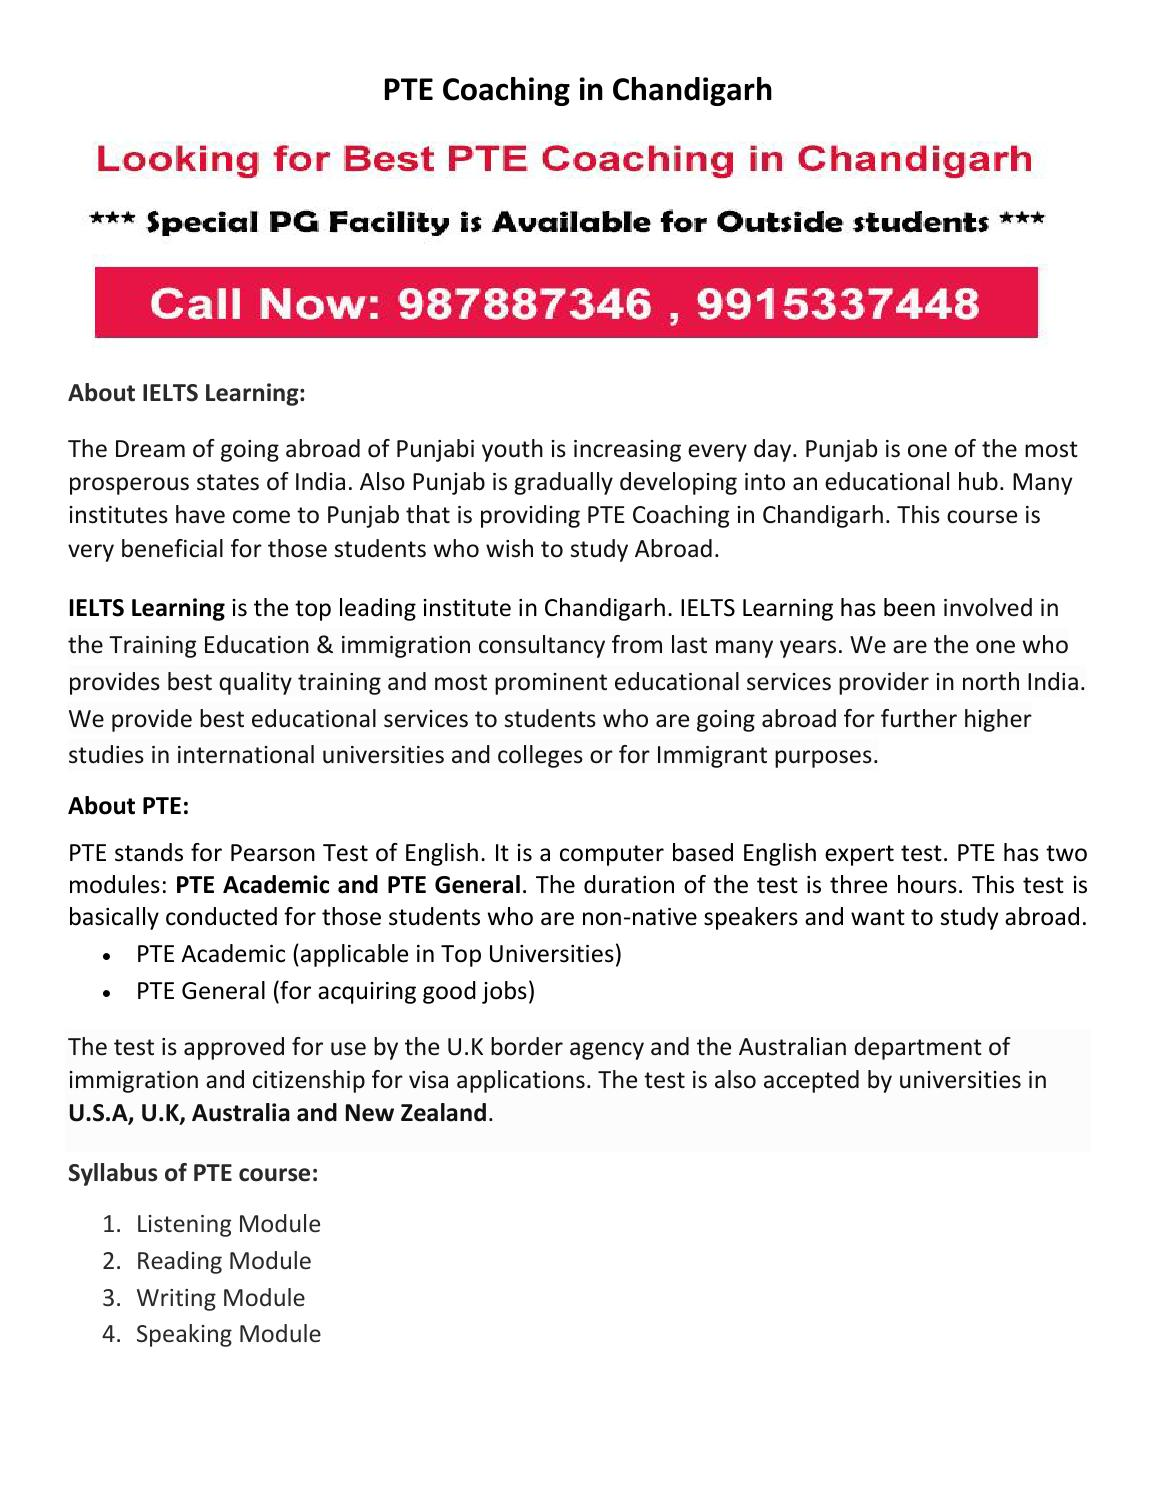 Pte coaching in chandigarh by IELTS Learning - issuu